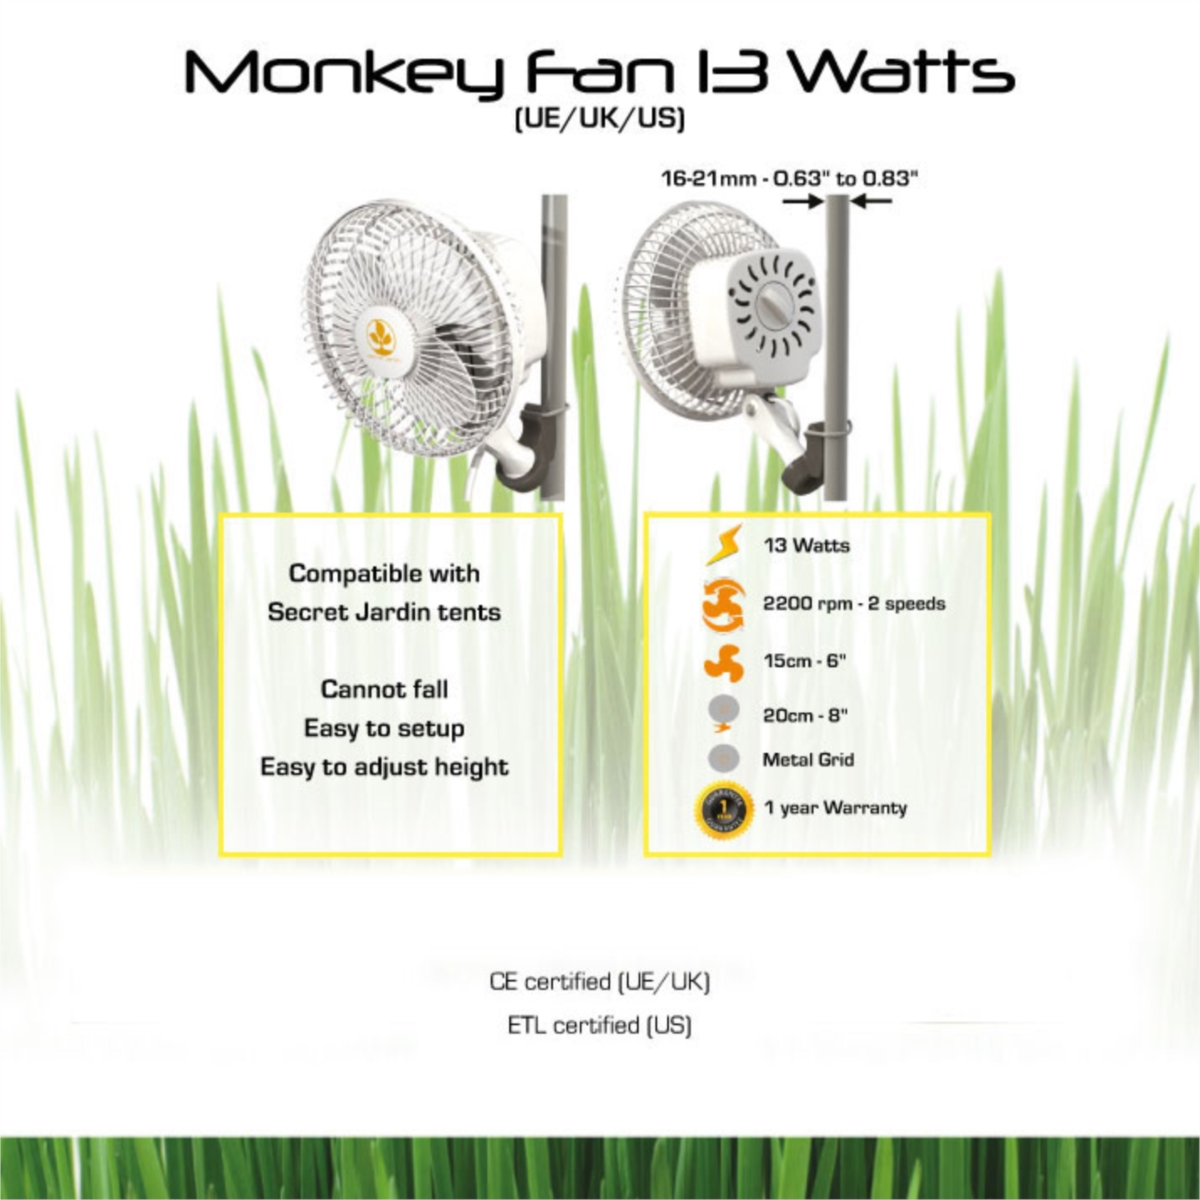 Ventilateur secret jardin monkey fan 16w 17 90 growshop - Ventilateur chambre de culture ...